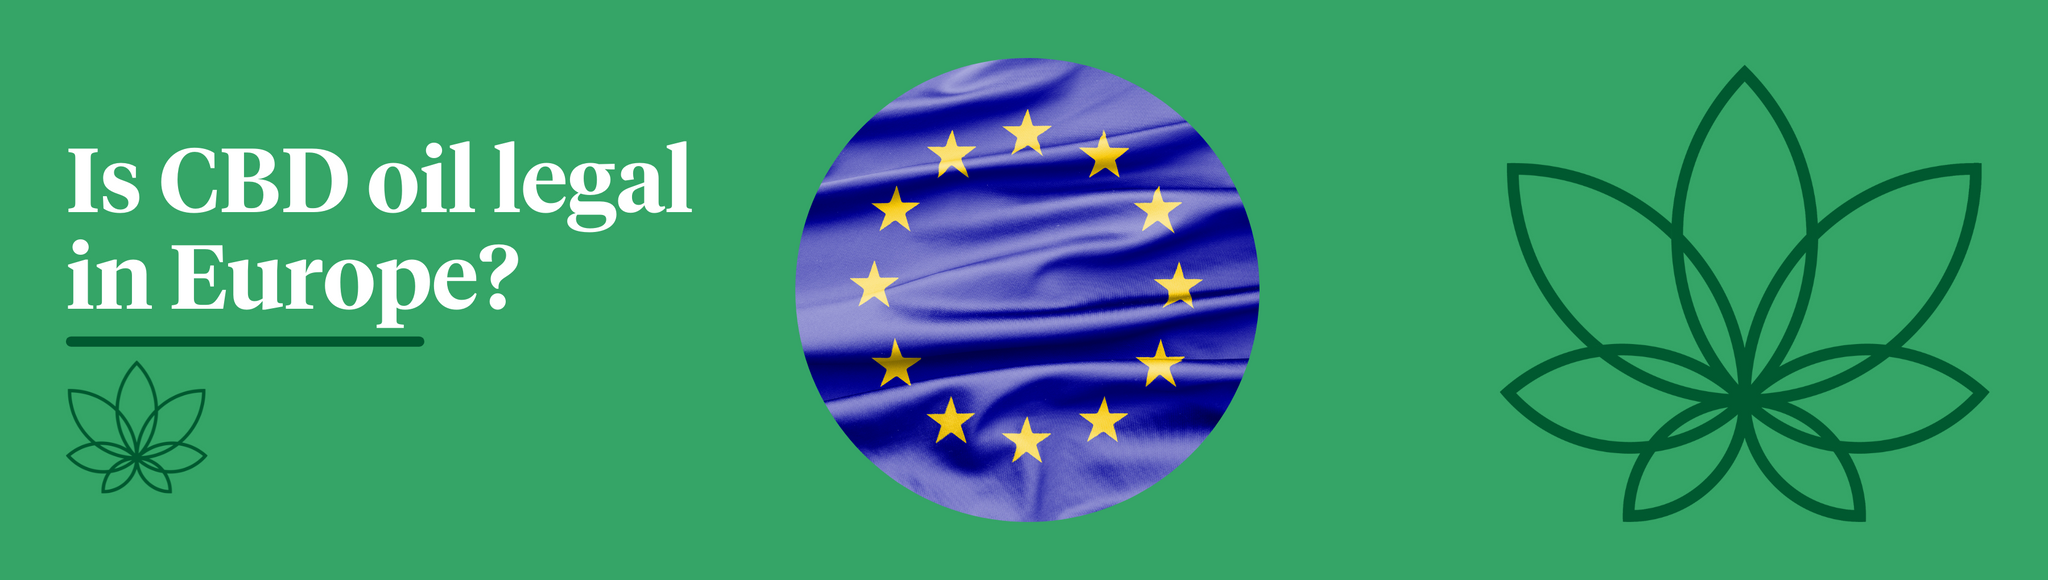 A green background with the Supreme CBD logo and the European flag in the centre showcasing is CBD oil legal in Europe?